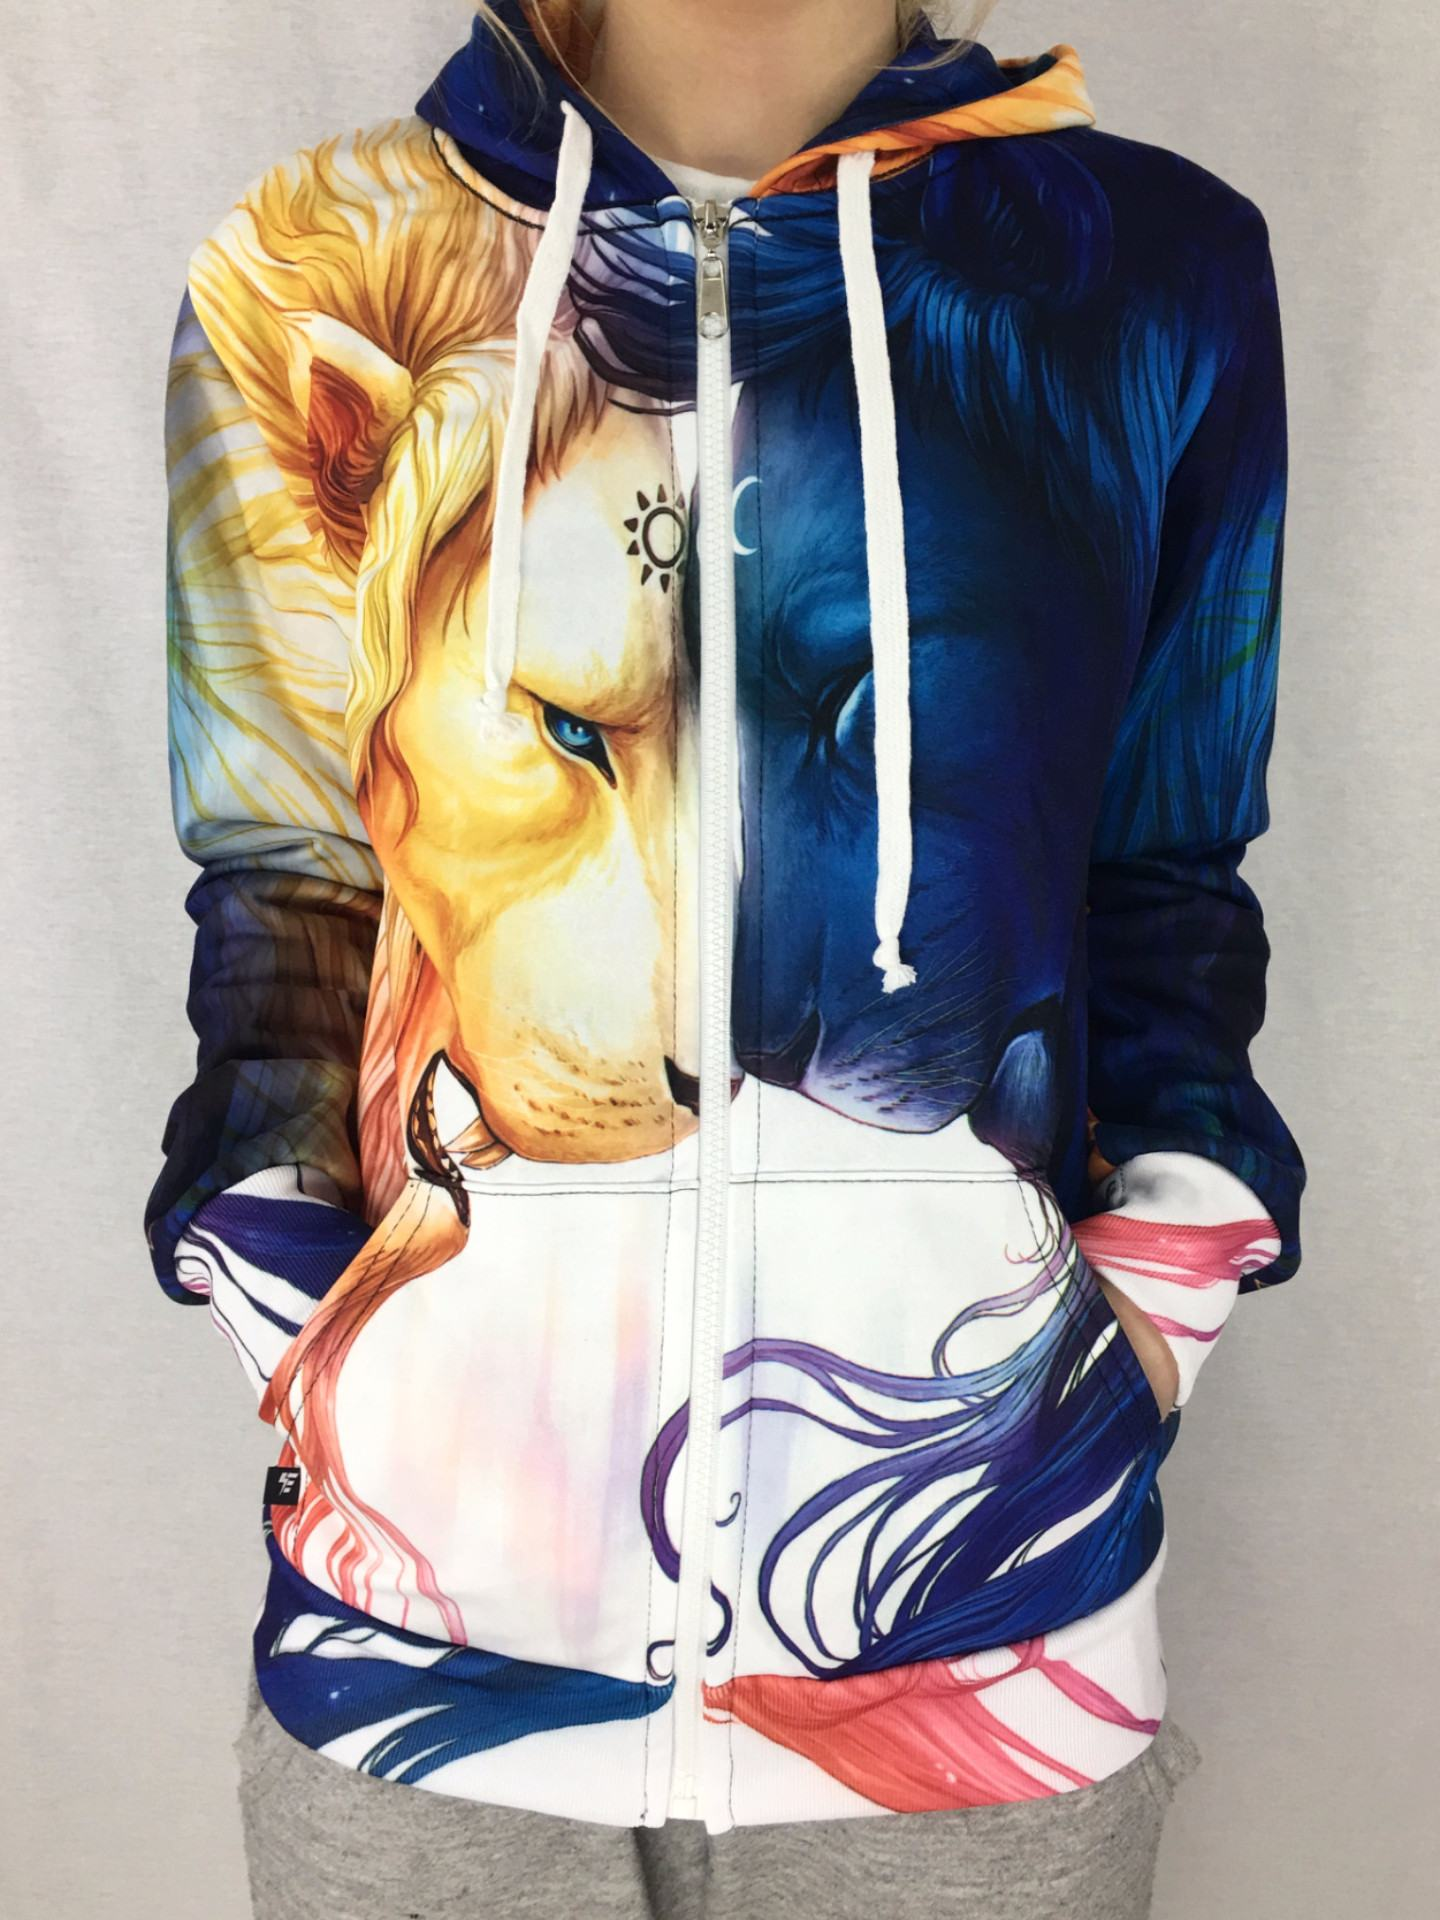 Day and Night Unisex Zip Hoodie Pullover Hoodies T6